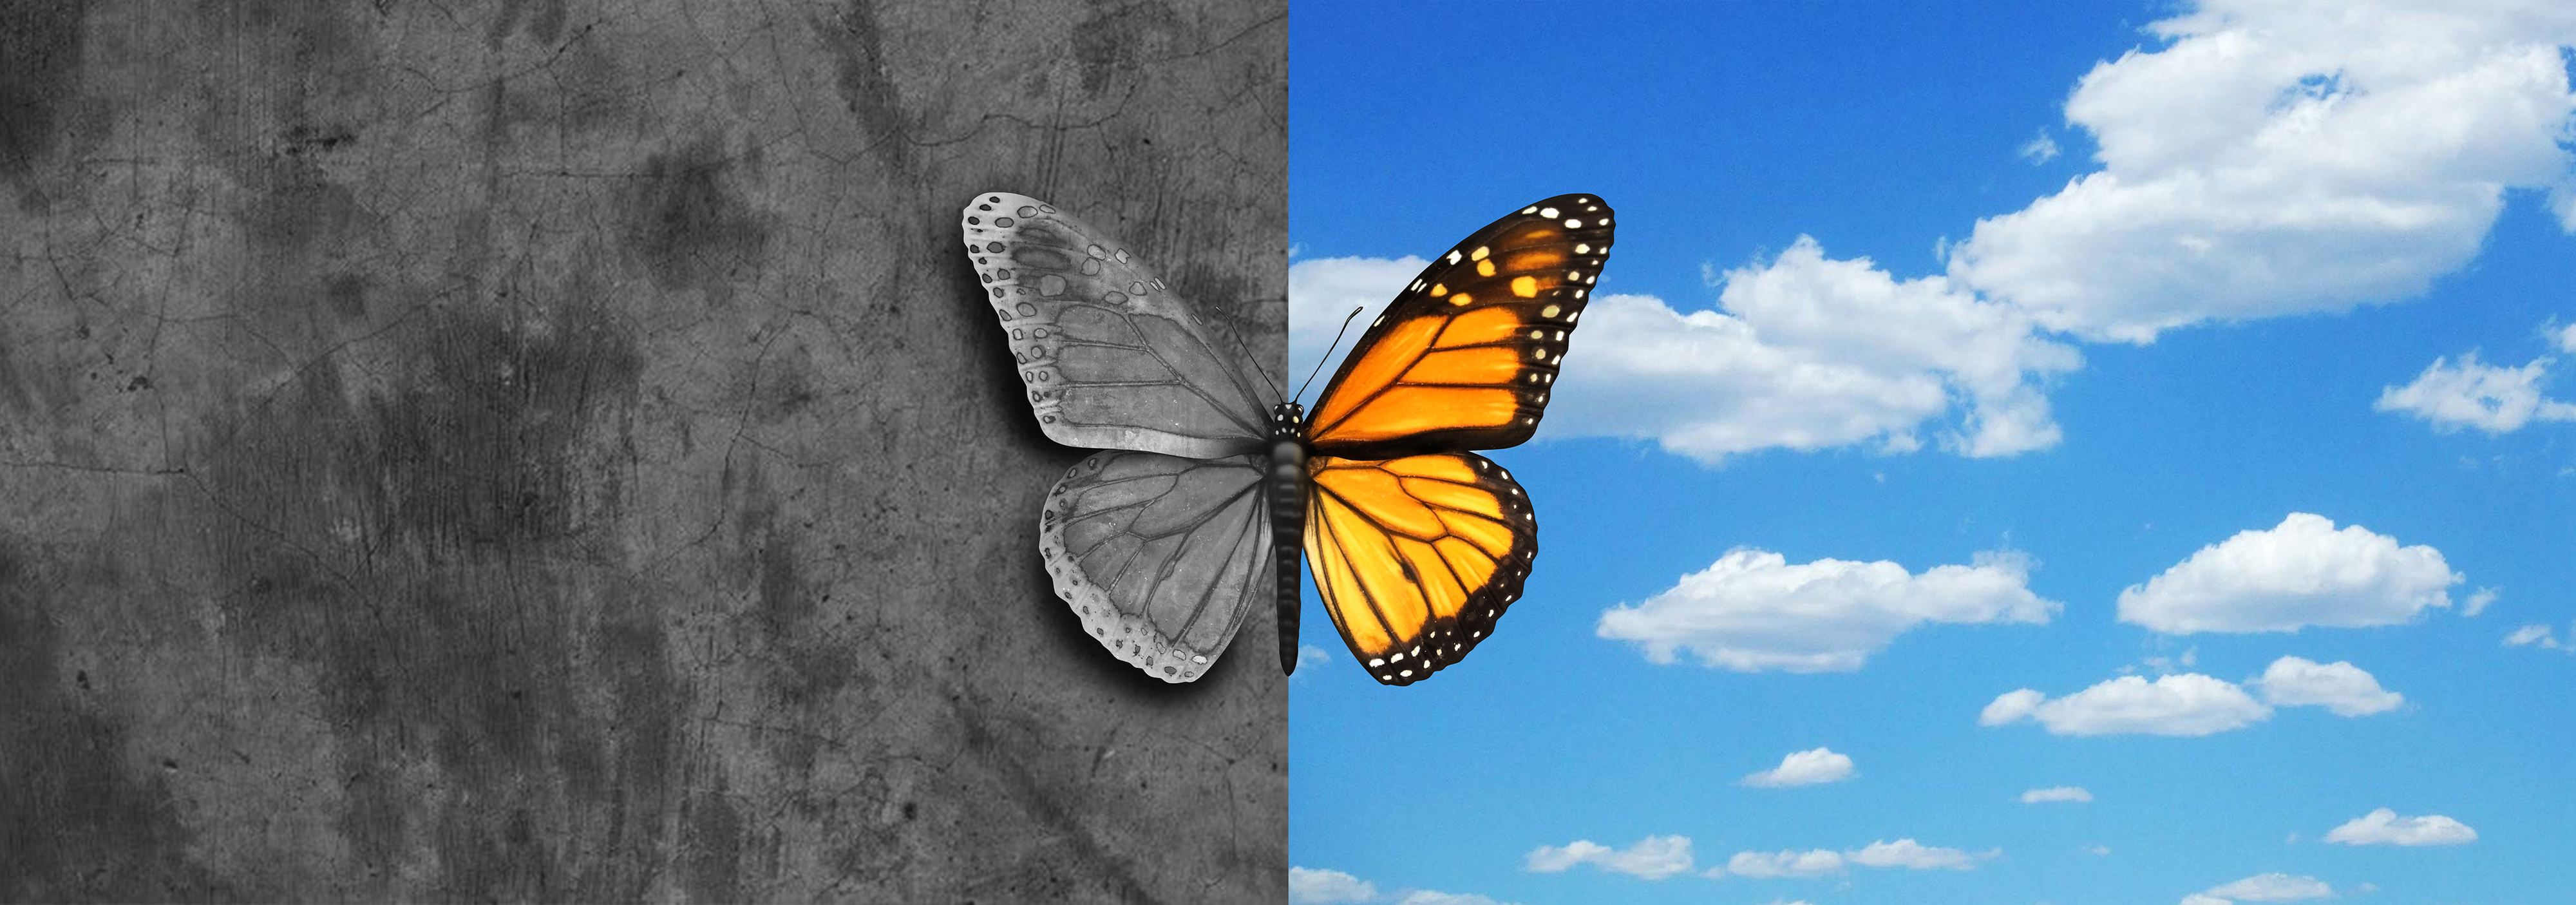 Bipolar mental disorder abstract psychological illness concept as a butterfly divided as one side in grey and sad colors with the other in full bright tones as a medical metaphor for psychiatric mood or feelings imbalance.